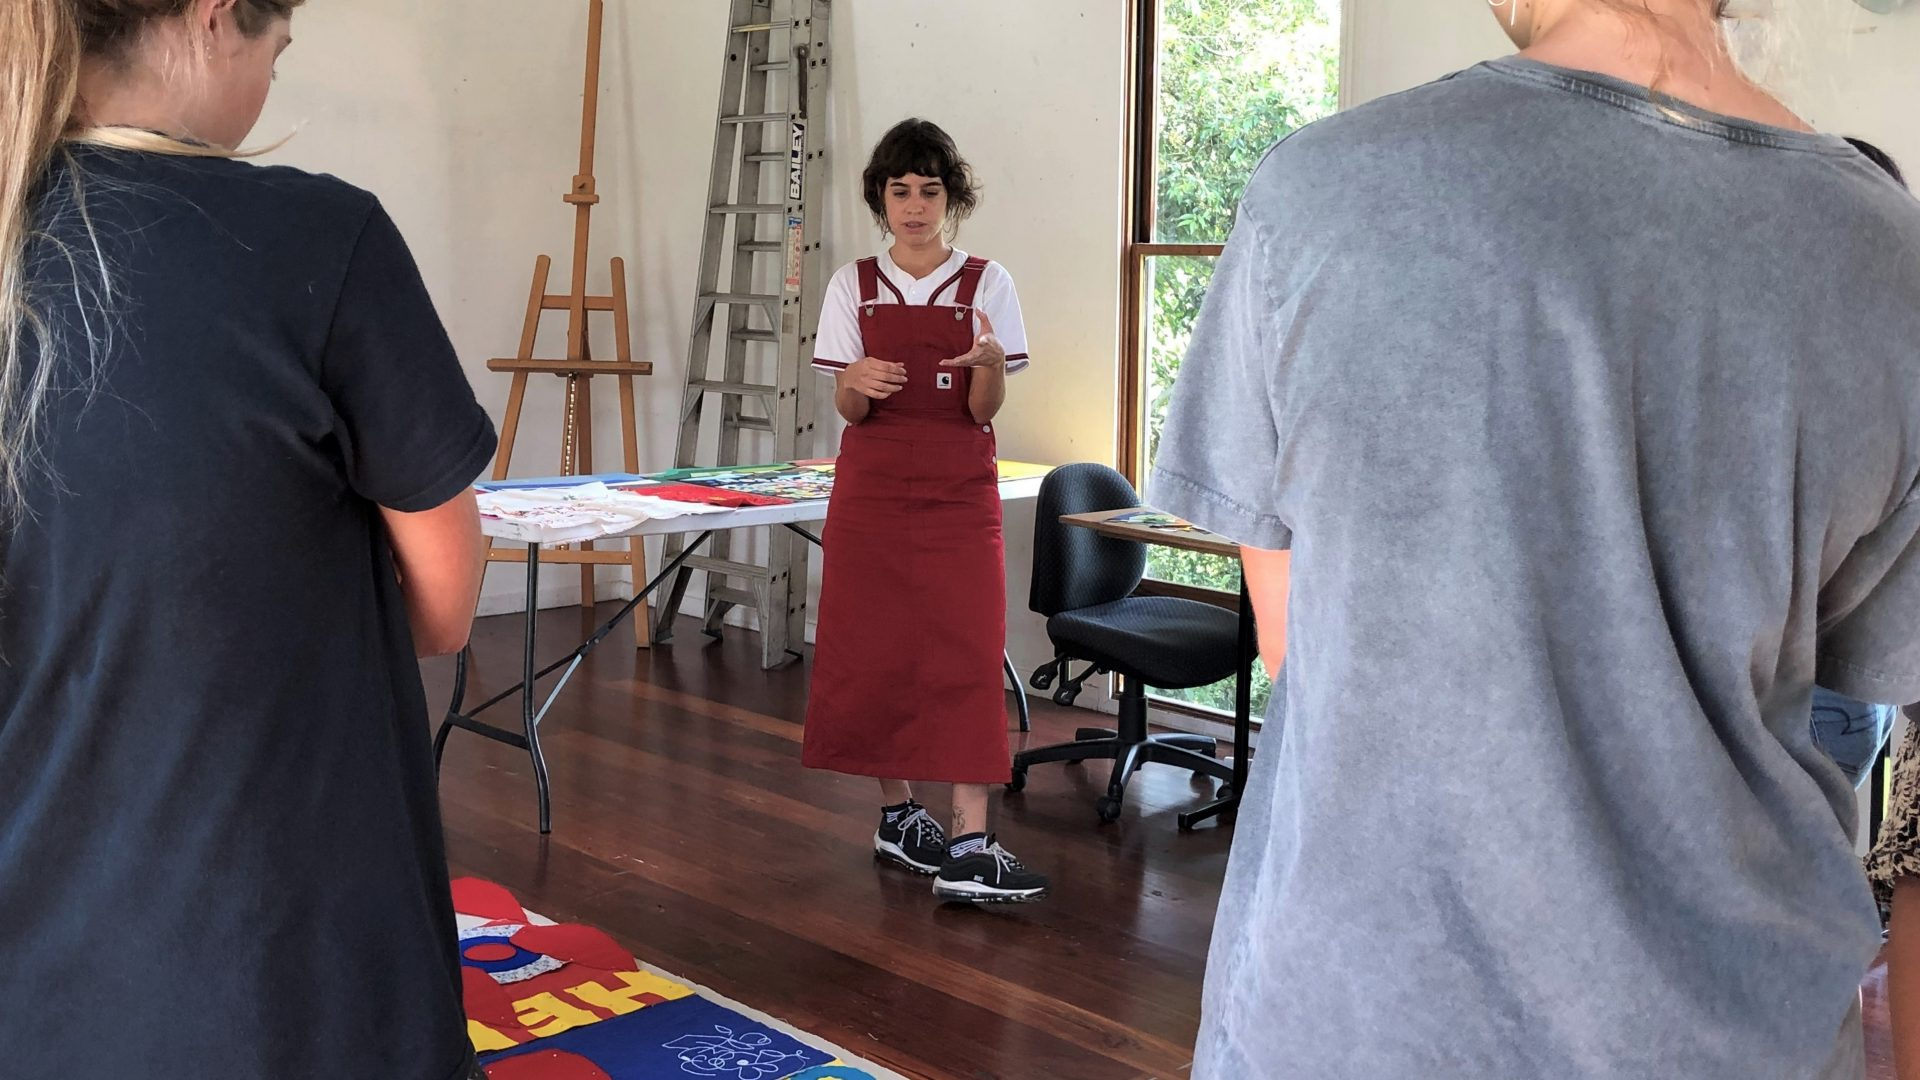 Person standing in front of two students. They are in an artist studio looking at colourful artworks on the ground